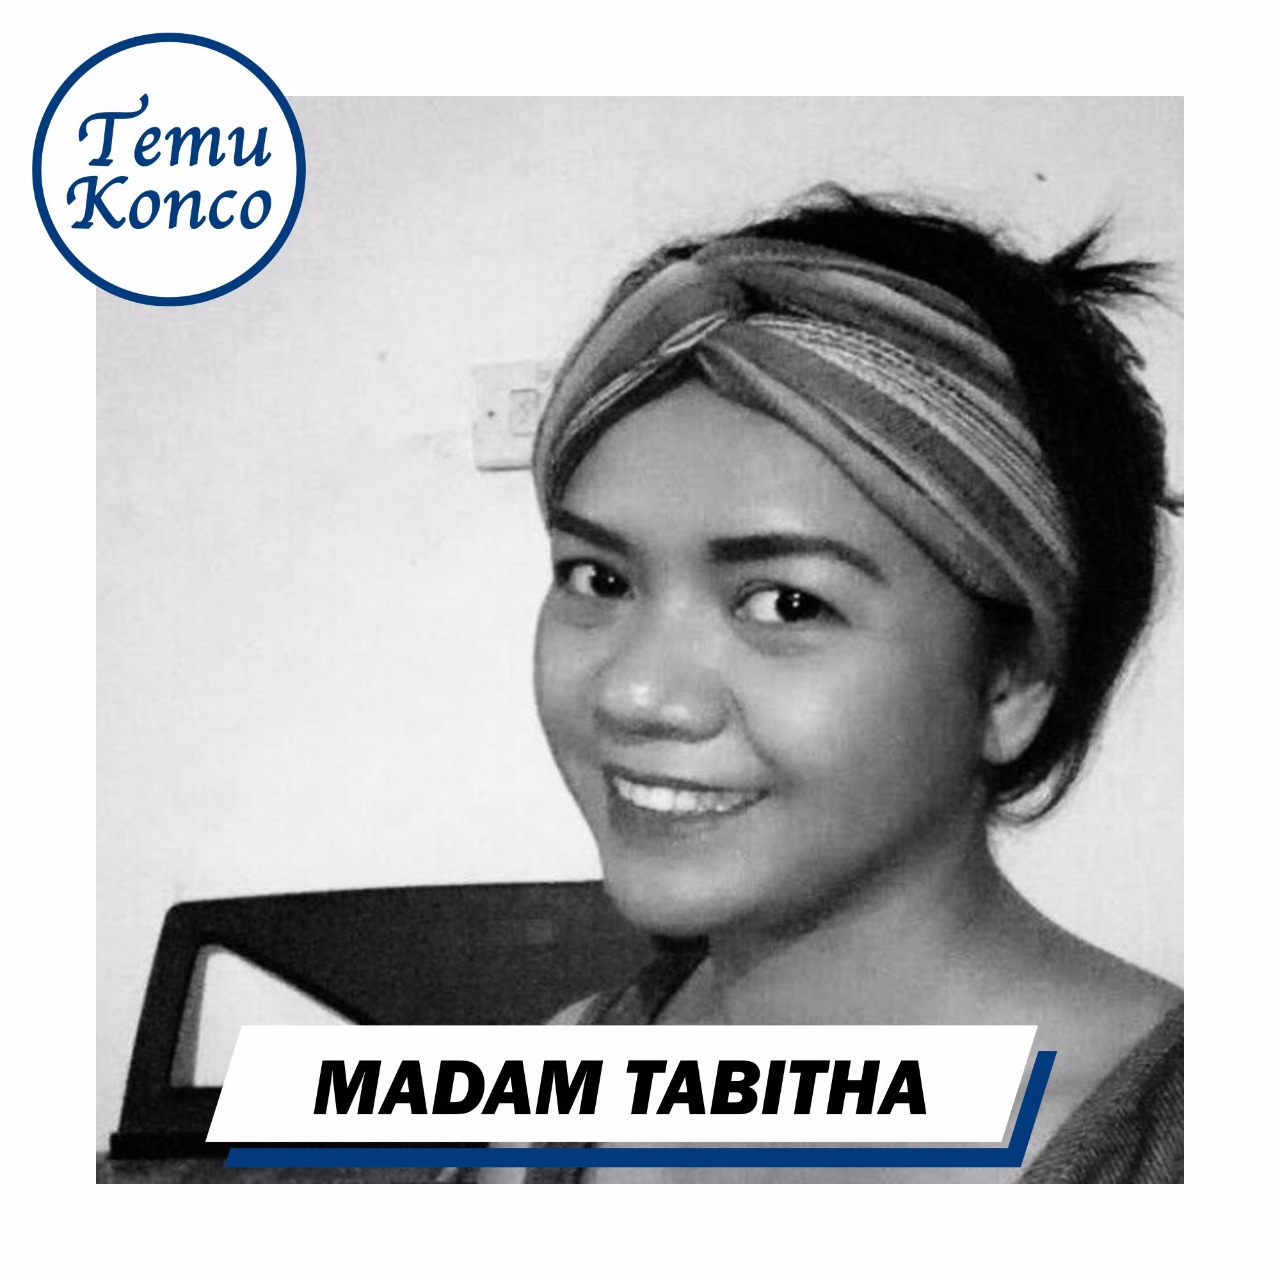 [TemuKonco Podcast Eps. 16] Madam Tabitha - Tarot